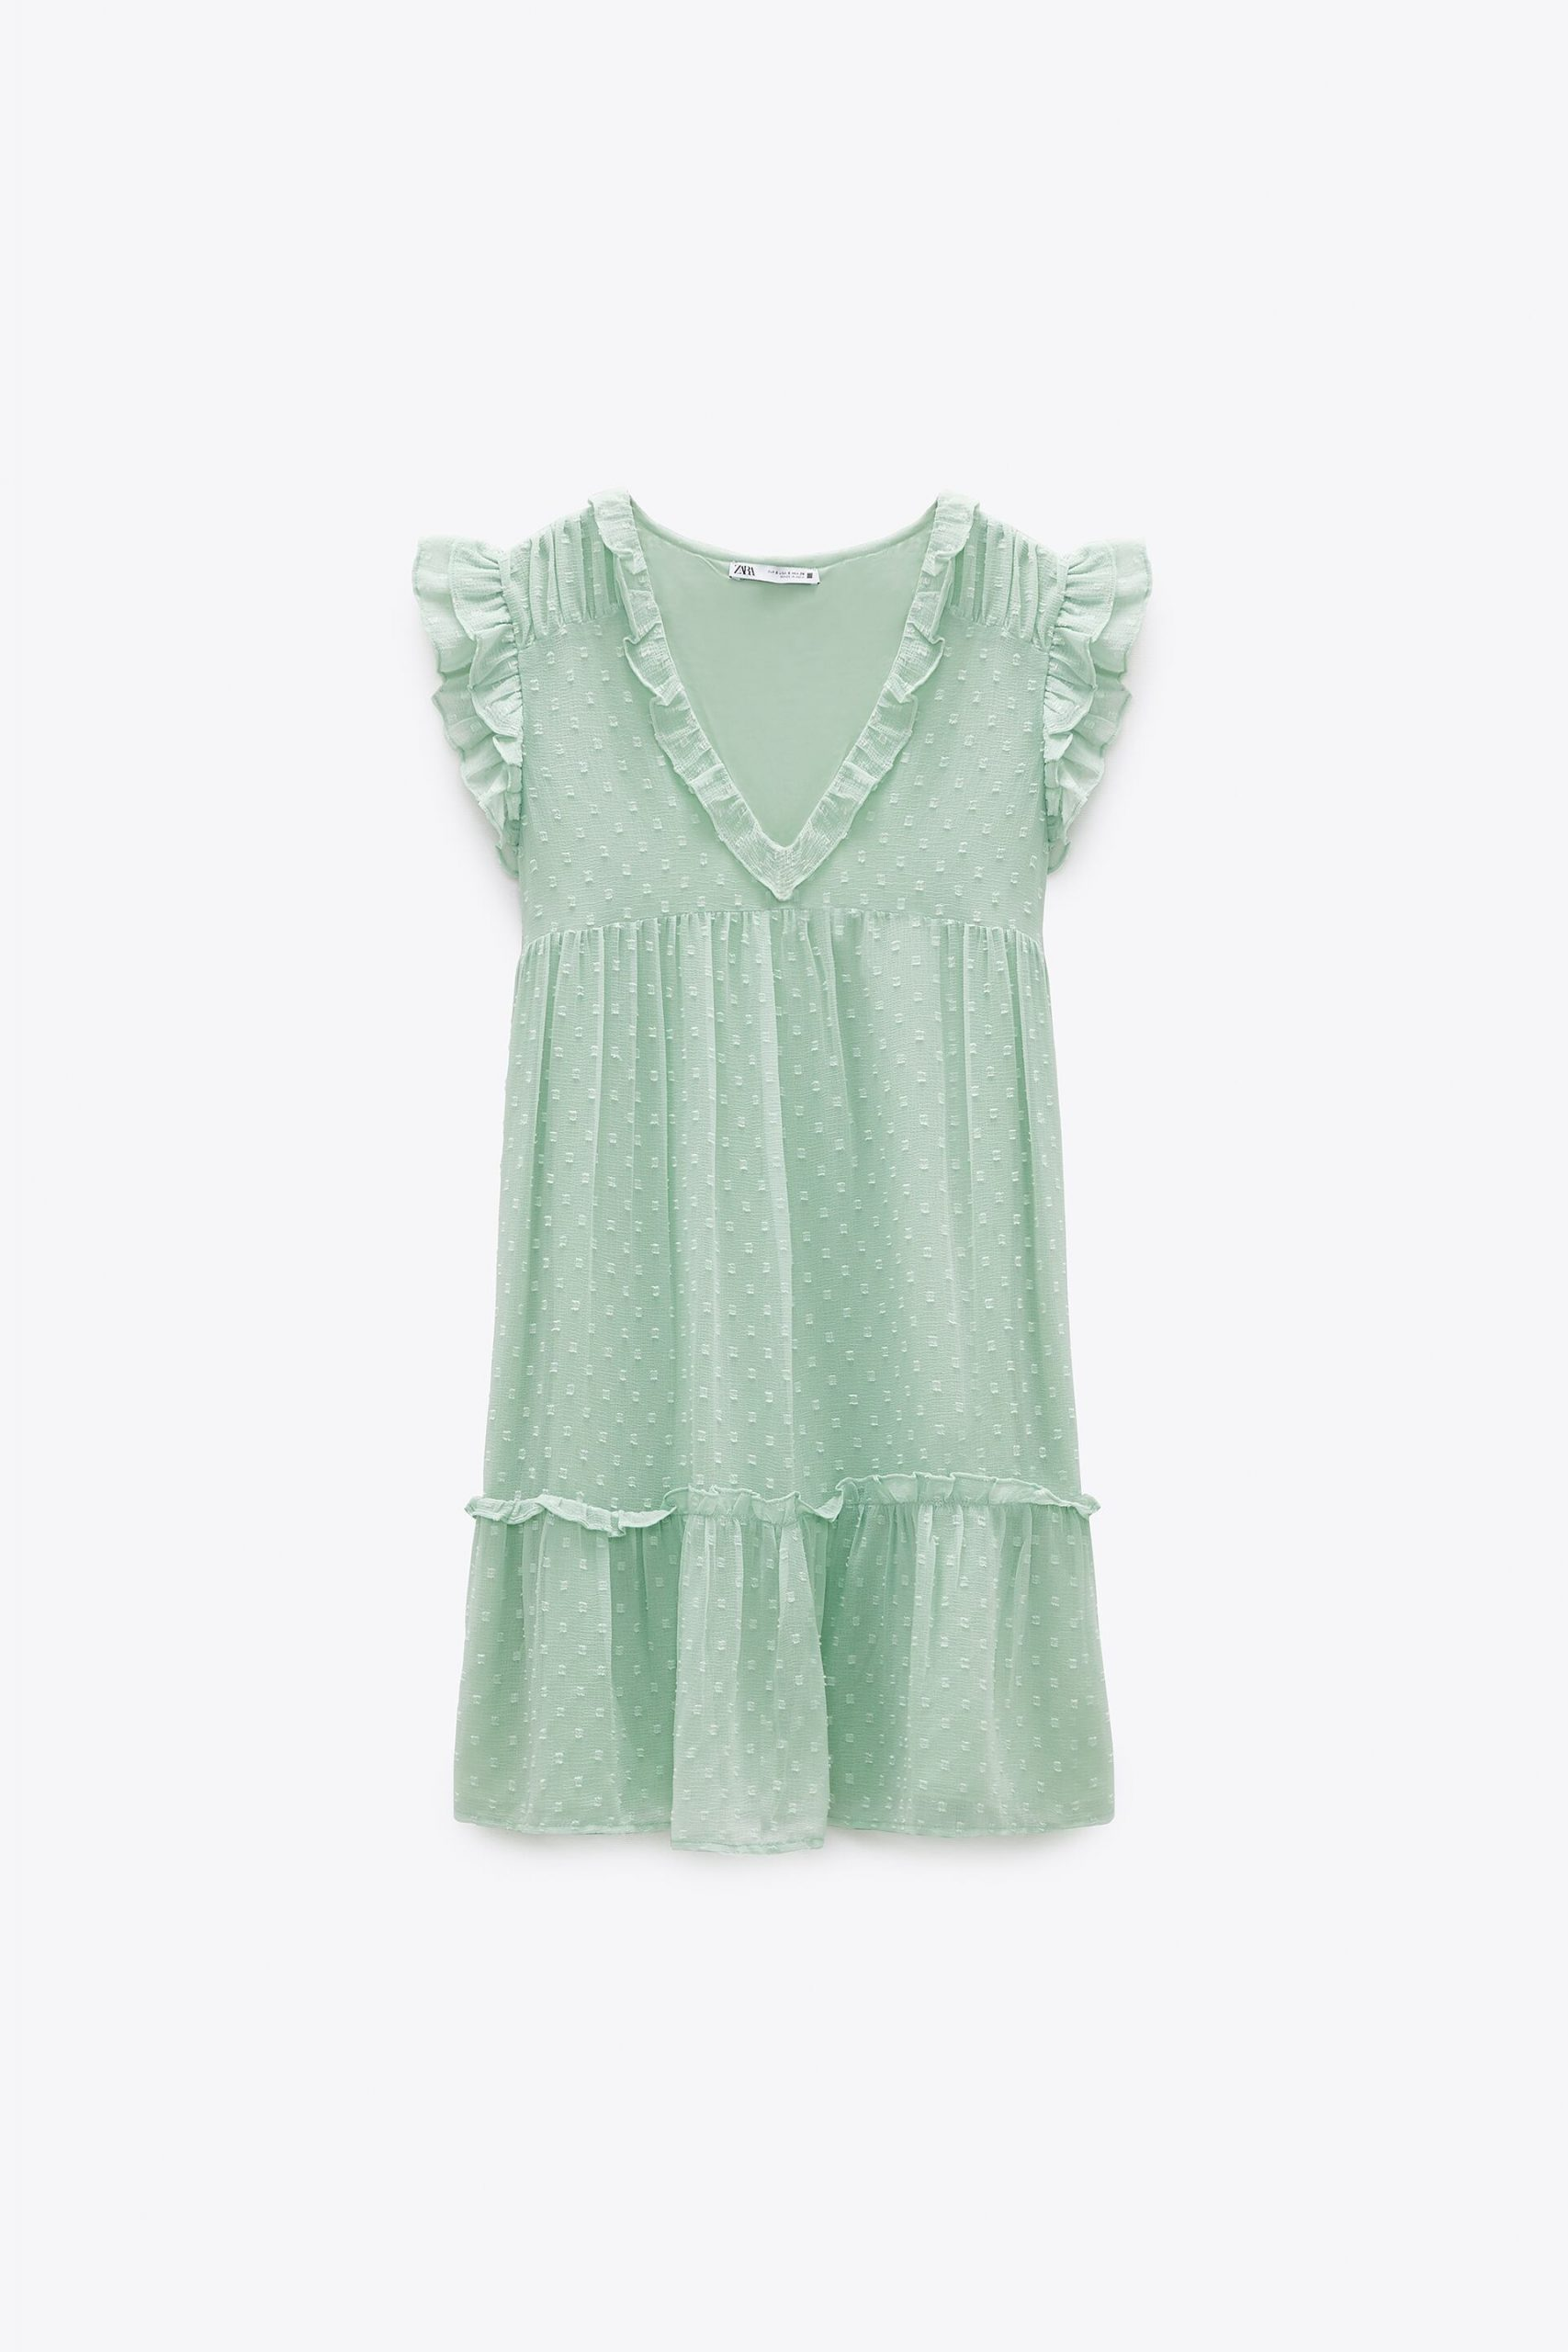 Mid-length mint dress with ruffle v-neck and short ruffled sleeves